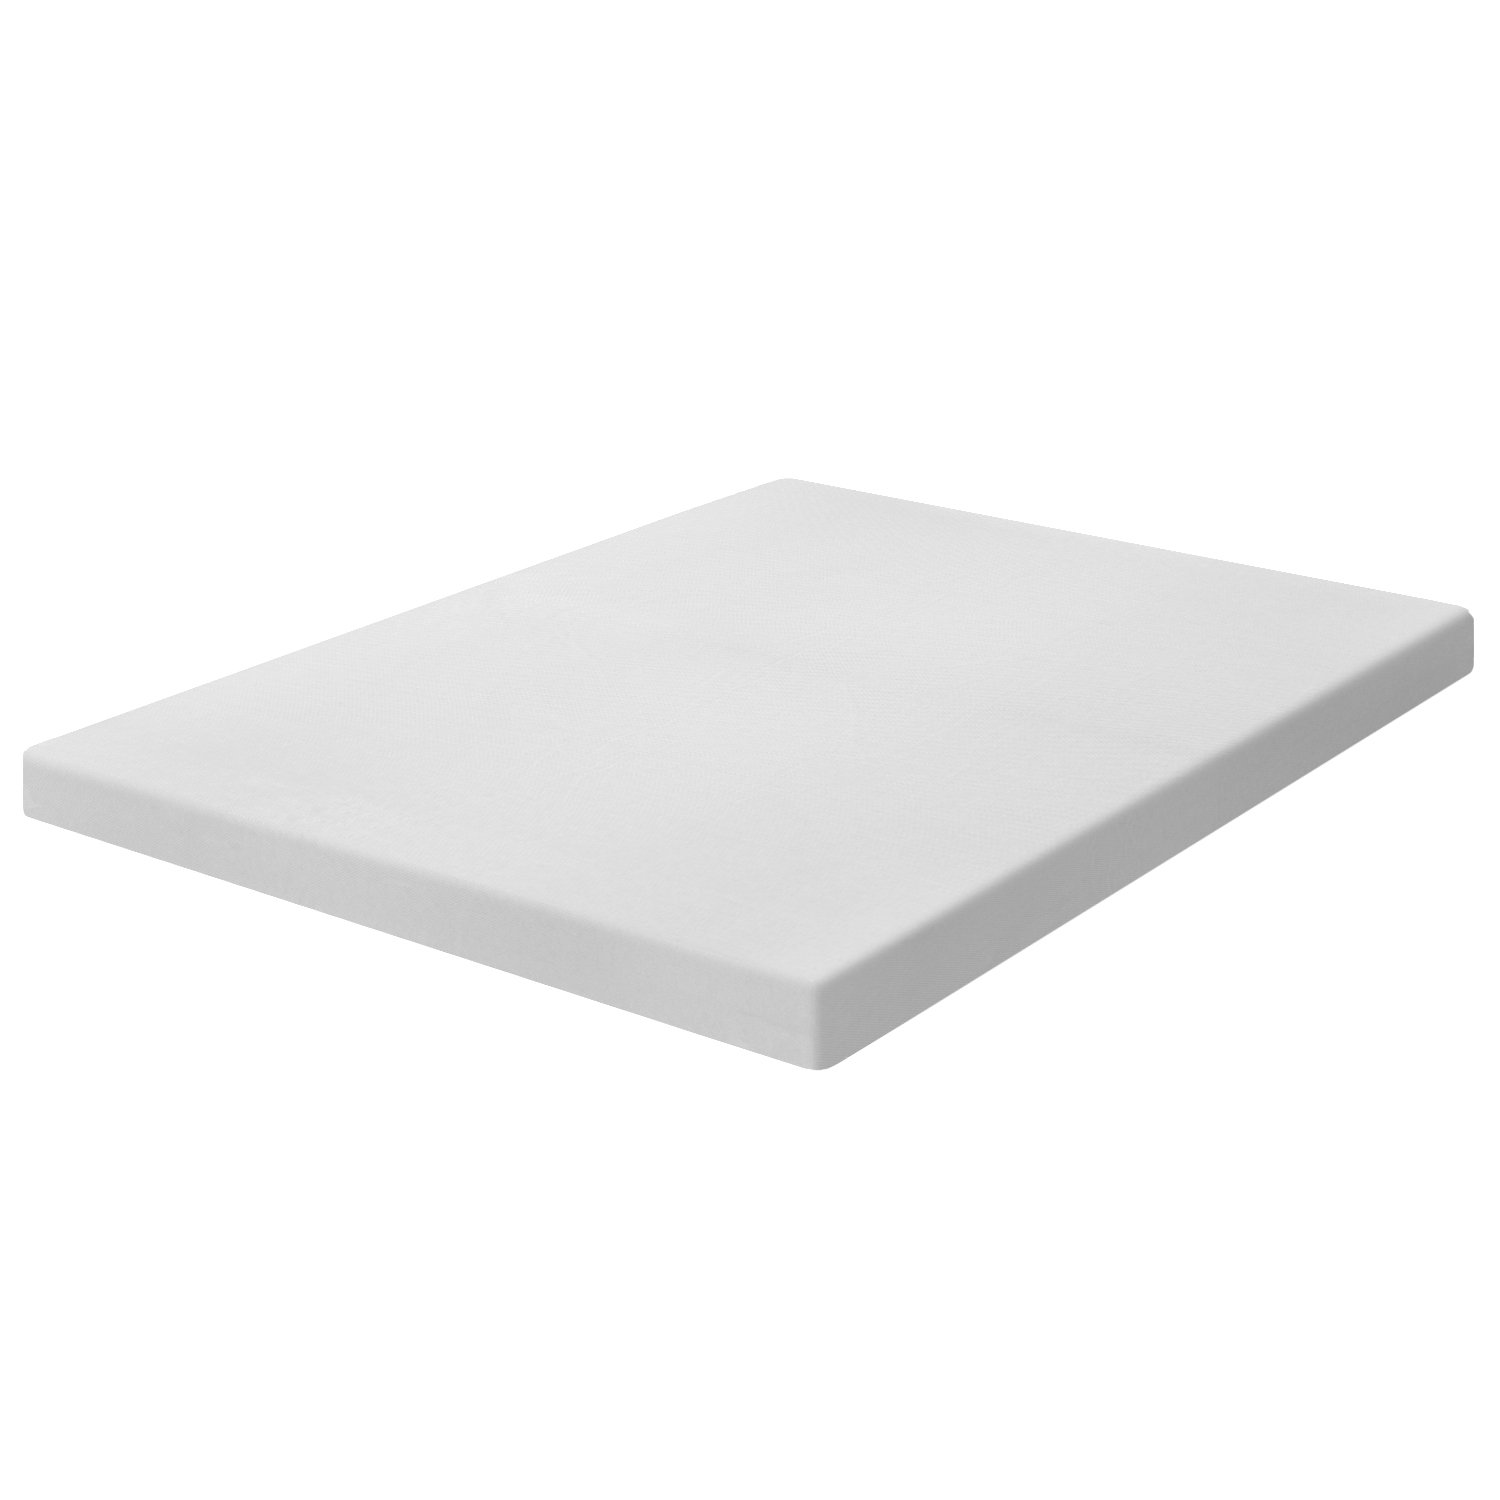 Best Price Mattress 4 Inch Memory Foam Mattress Topper Full New Free Shippin Ebay